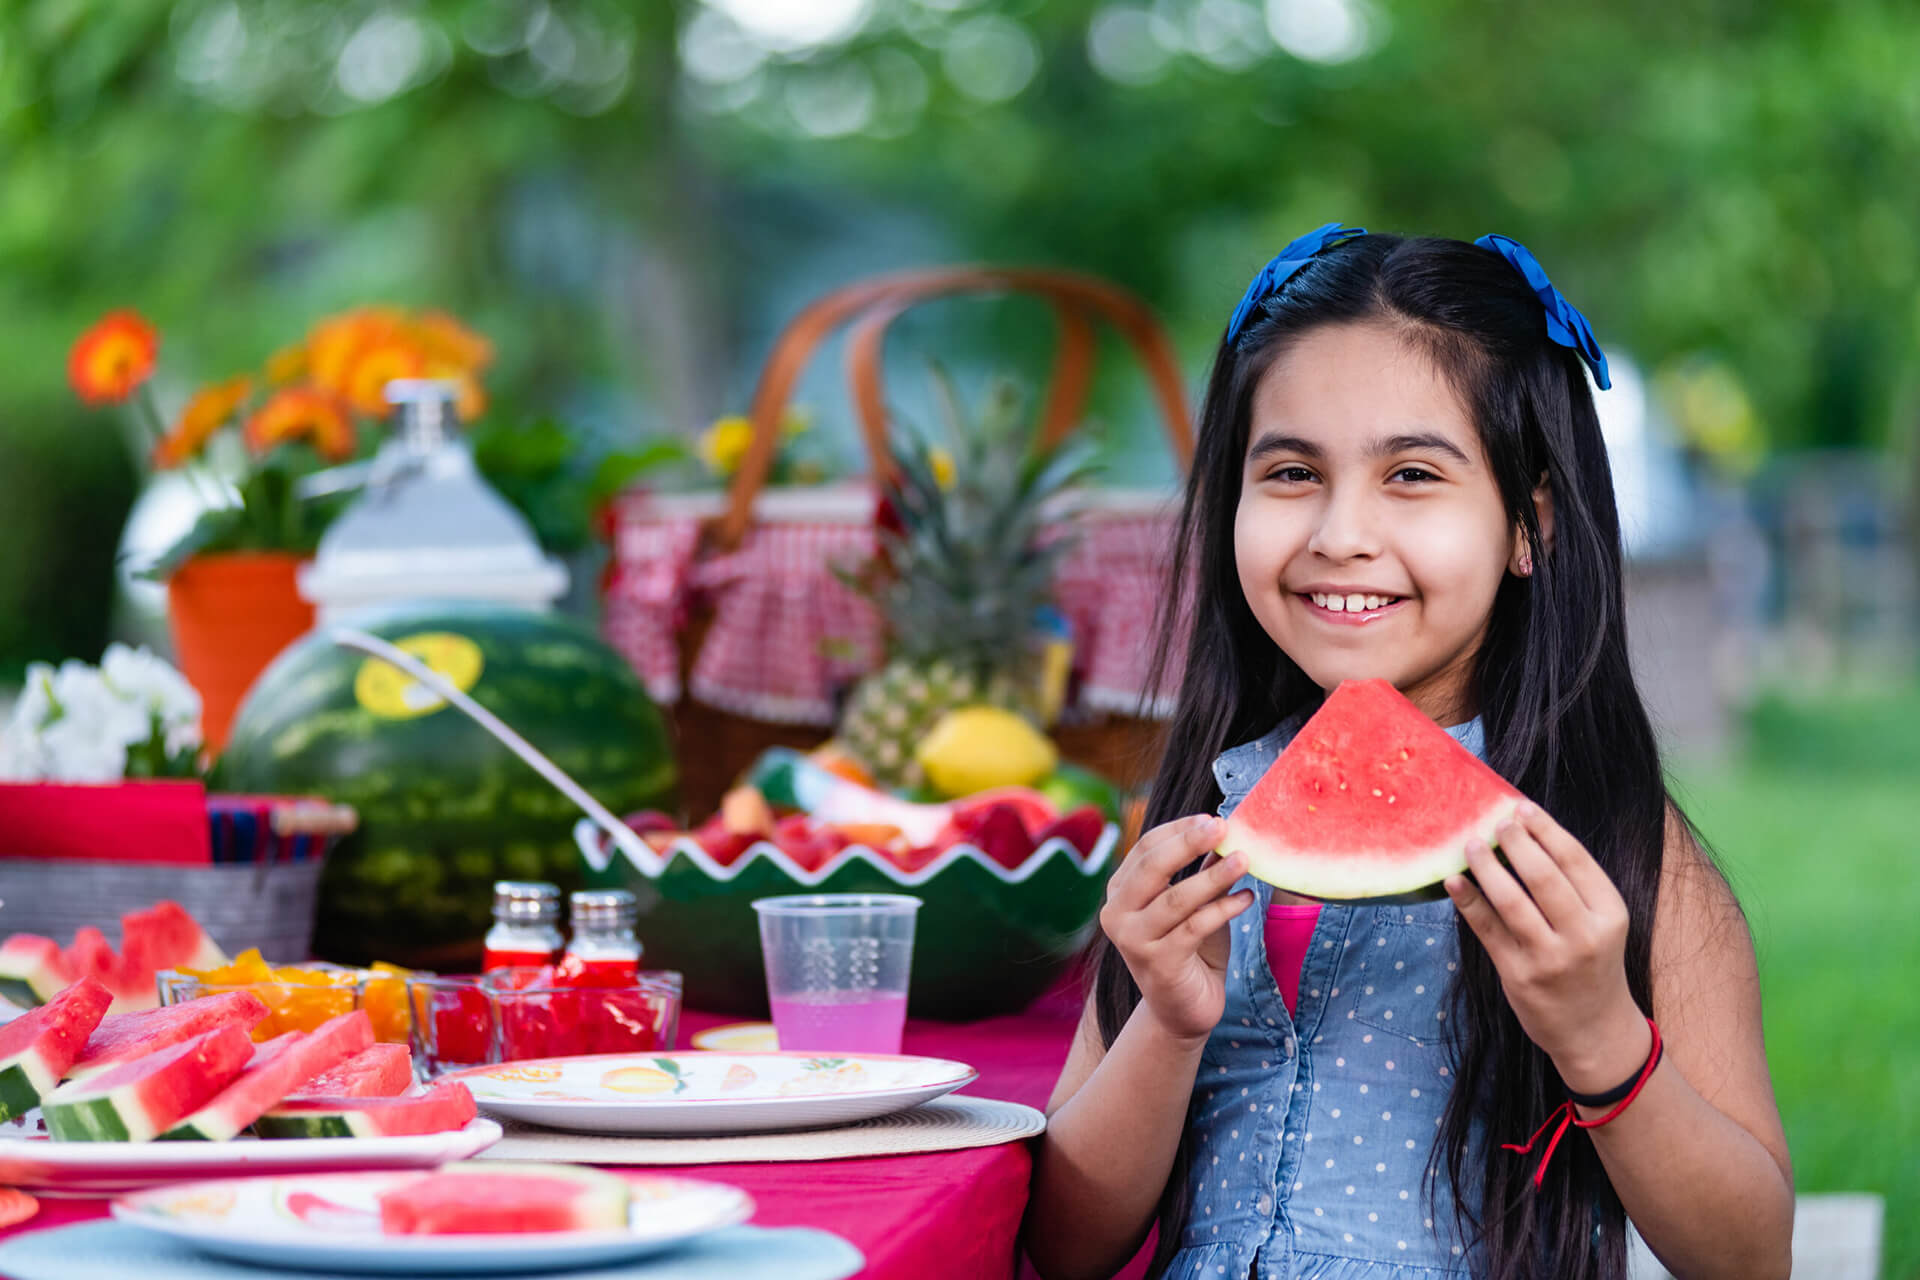 Kids Choice Watermelons all smiles